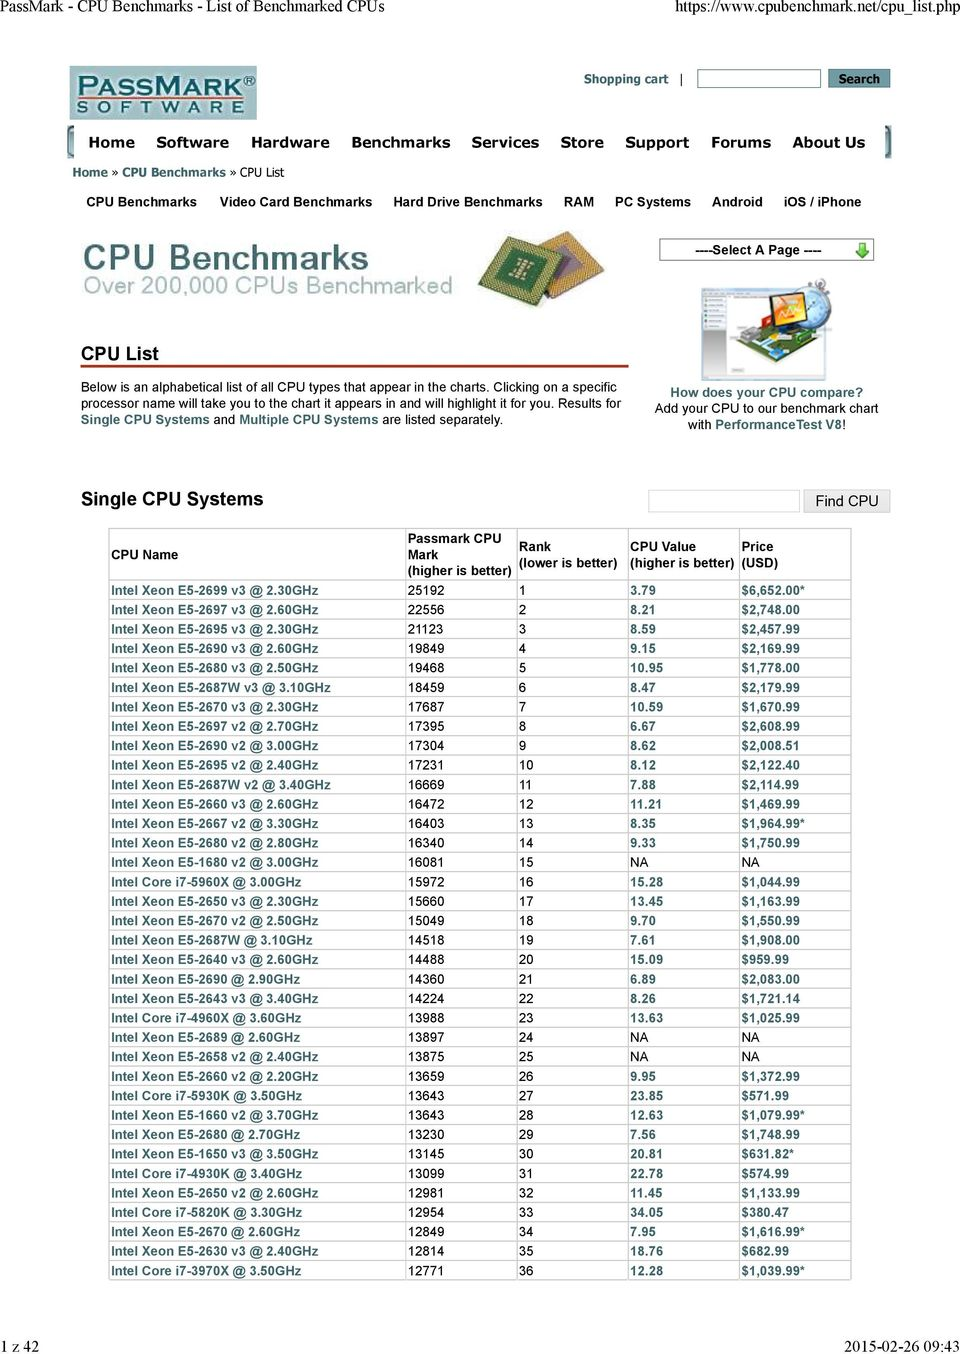 Clicking on a specific processor name will take you to the chart it appears in and will highlight it for you. Results for Single CPU Systems and Multiple CPU Systems are listed separately.